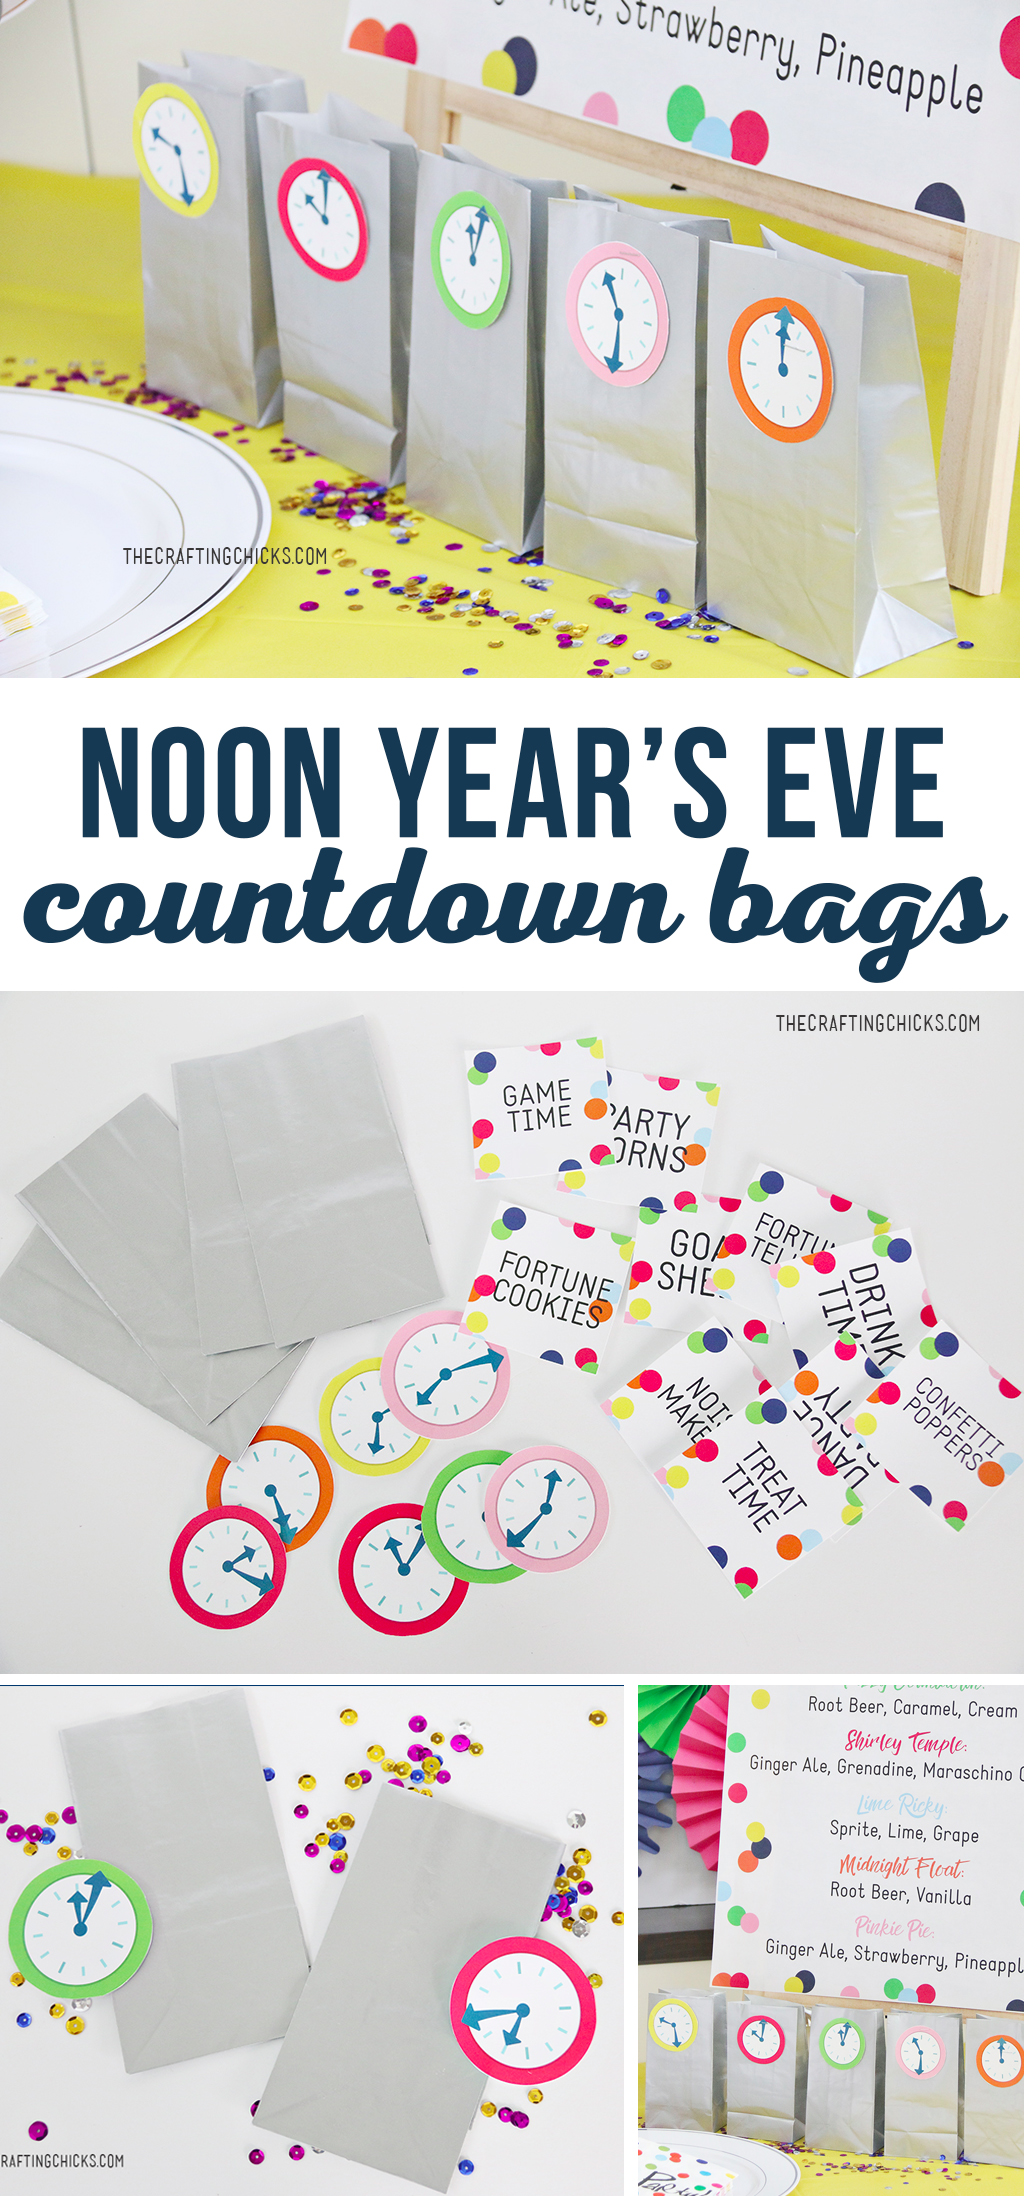 New Year's Eve Kids' Countdown Bags are a great way to keep kids busy while waiting for the new year. We used these with our Noon Year's Eve Kids Party and they were a hit.